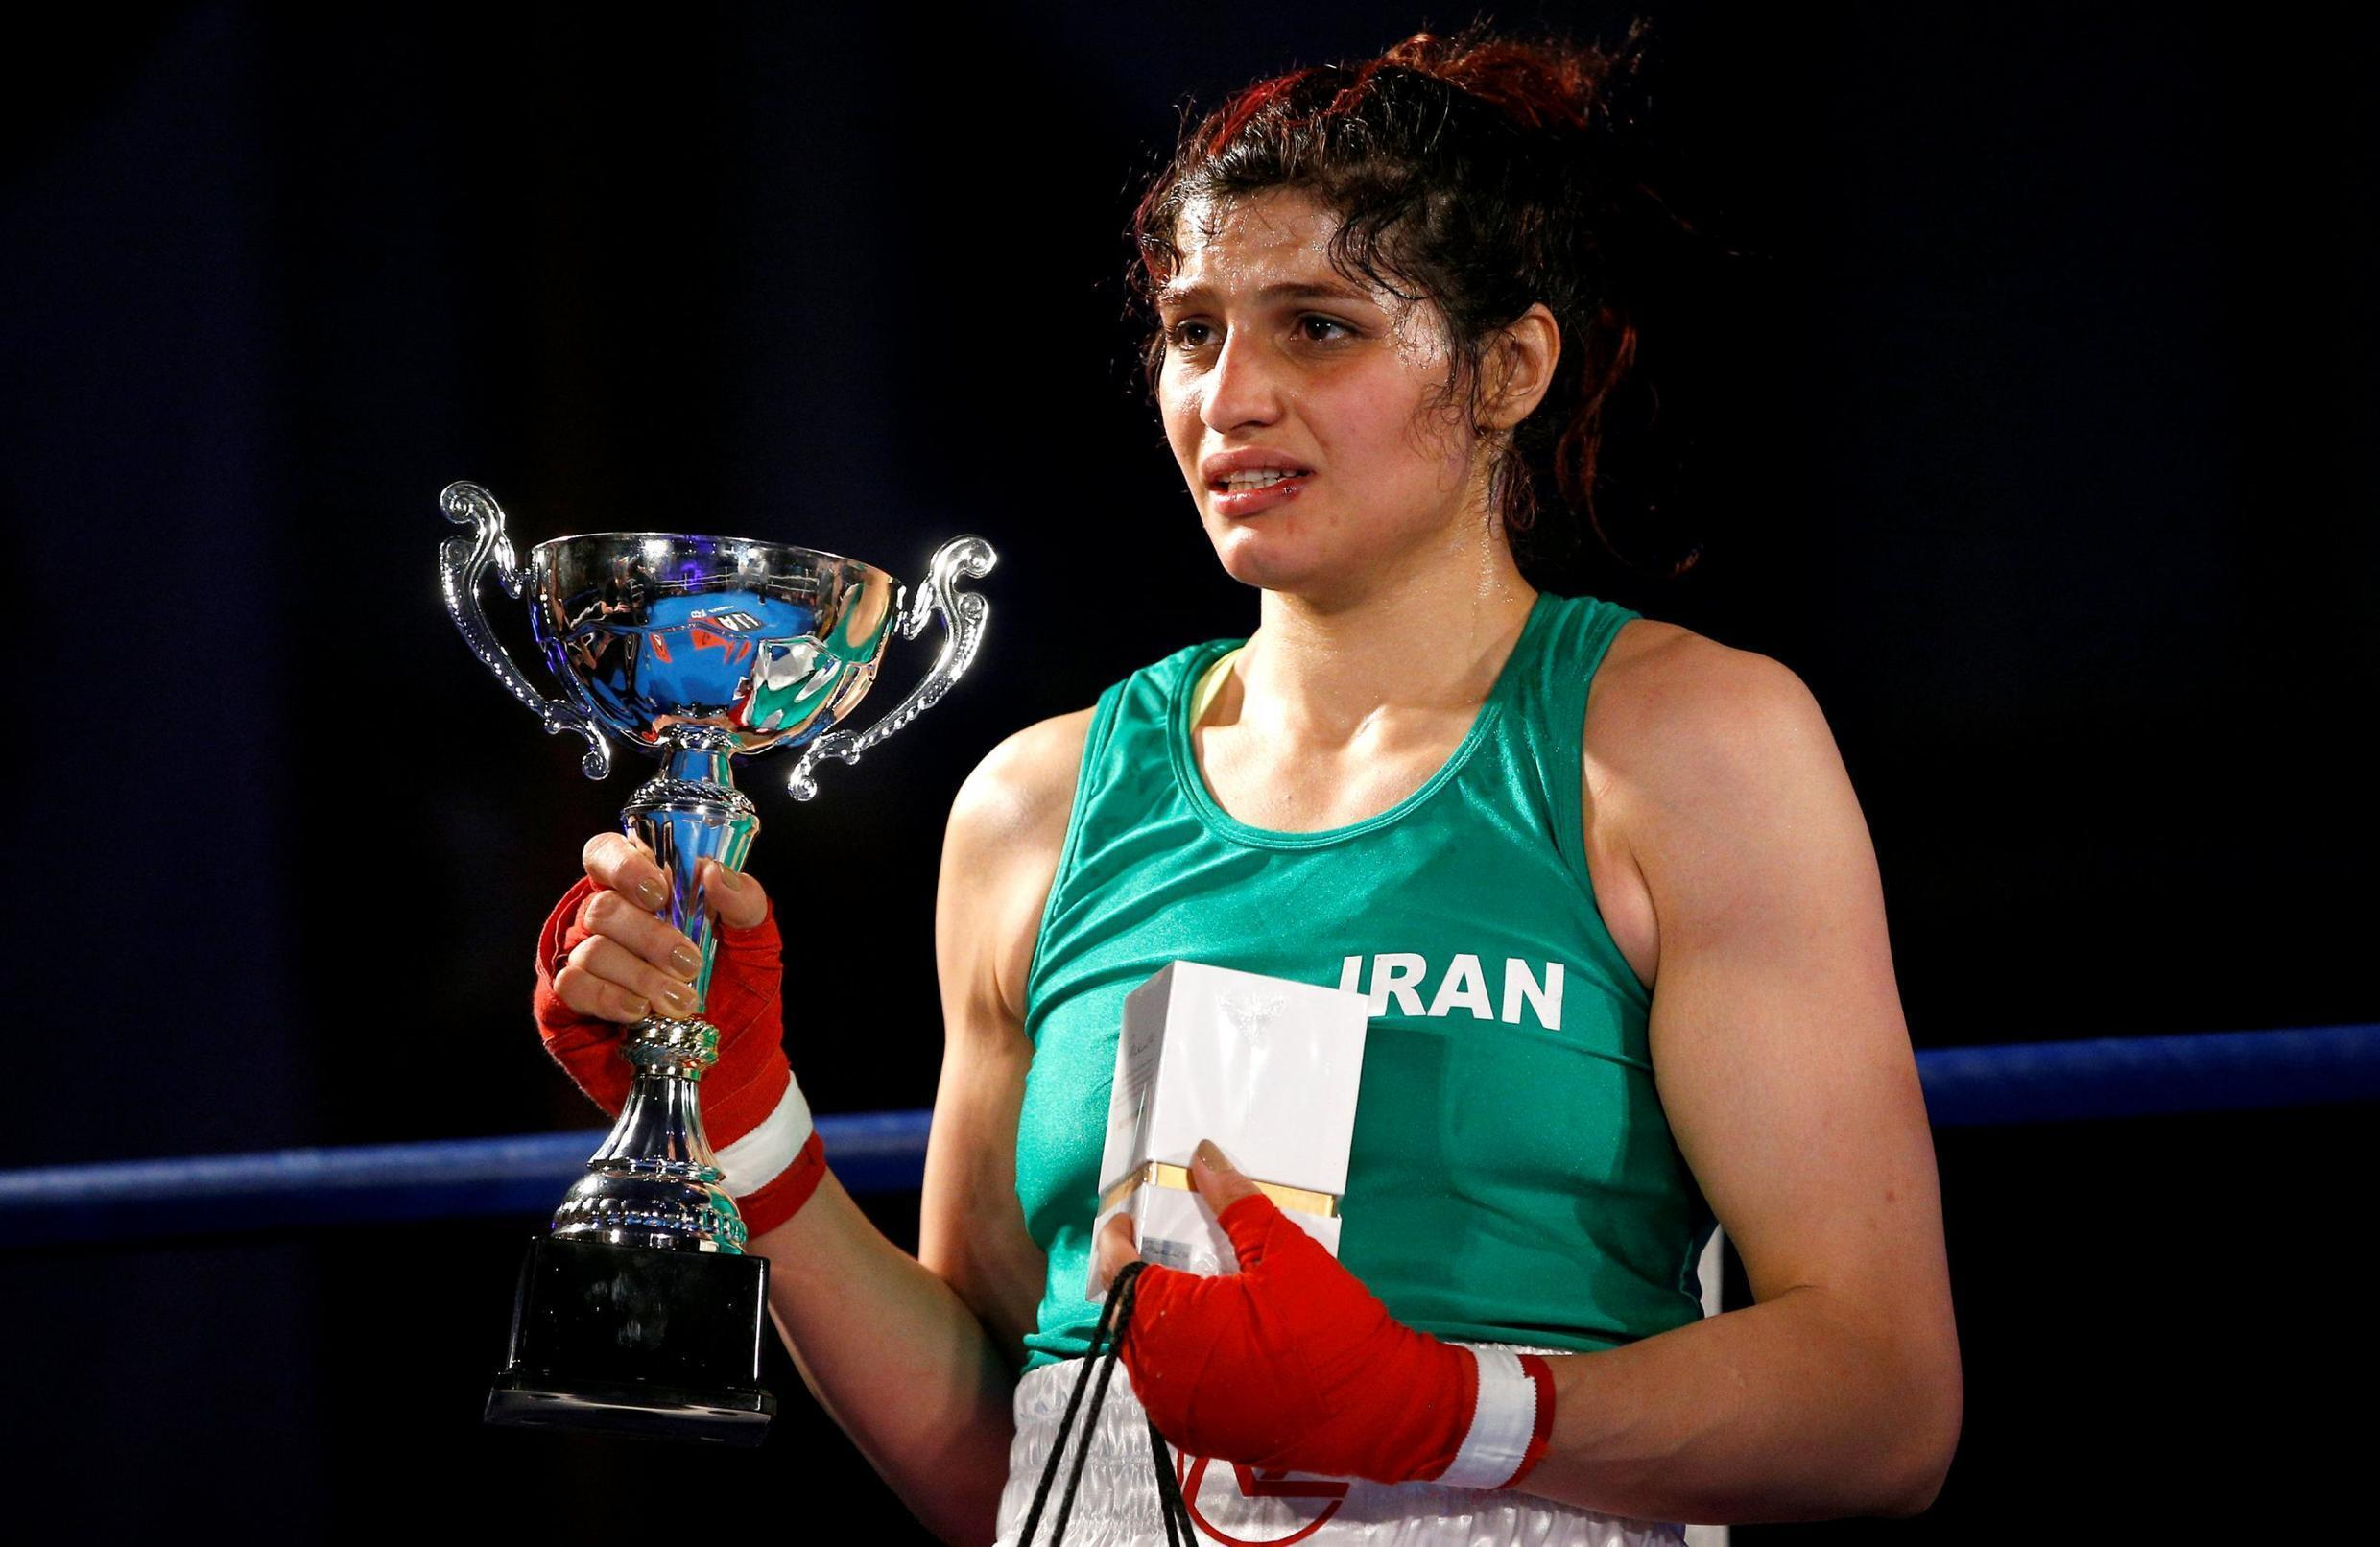 Iranian boxer Sadaf Khadem celebrates winning the fight against French boxer Anne Chauvin at the end of an official boxing bout in Royan, France, April 13, 2019.